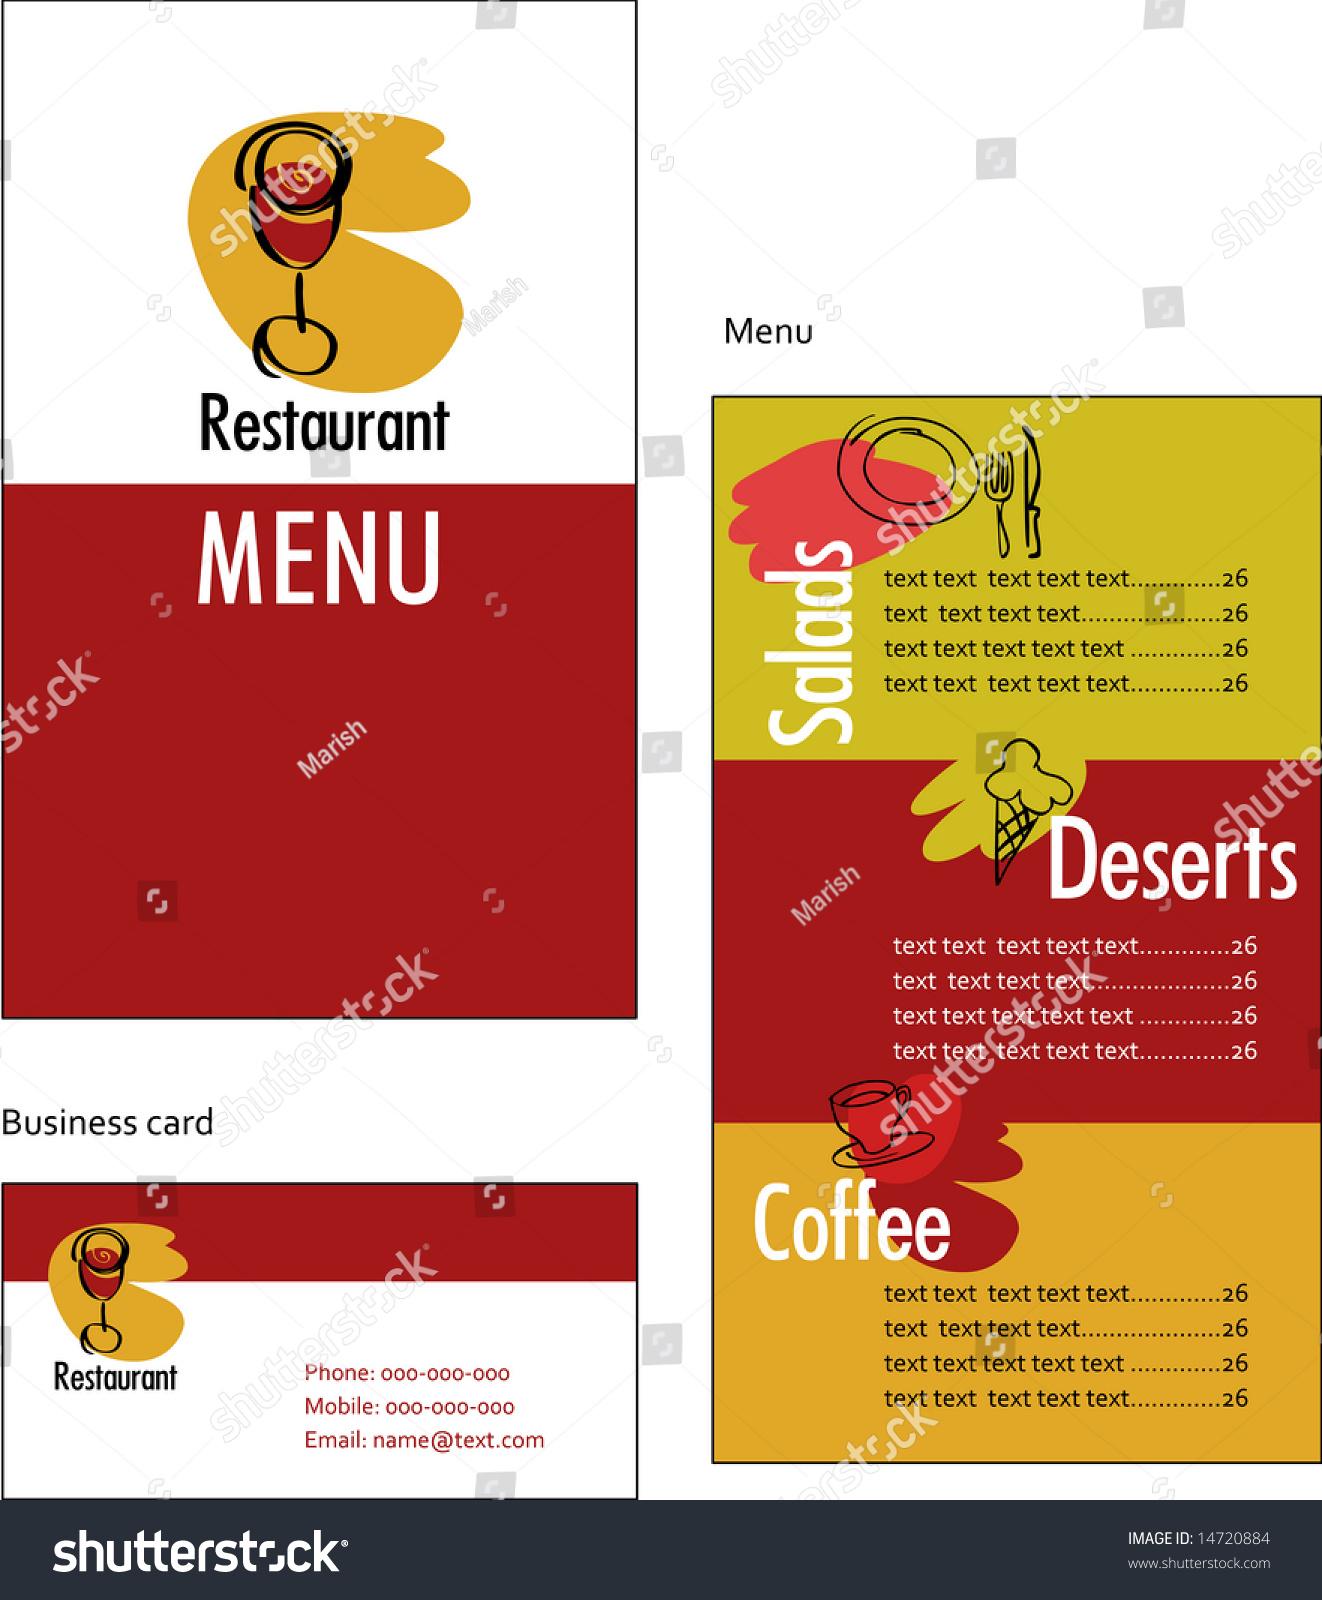 Template designs menu business card restaurant stock for Sandwich shop menu template